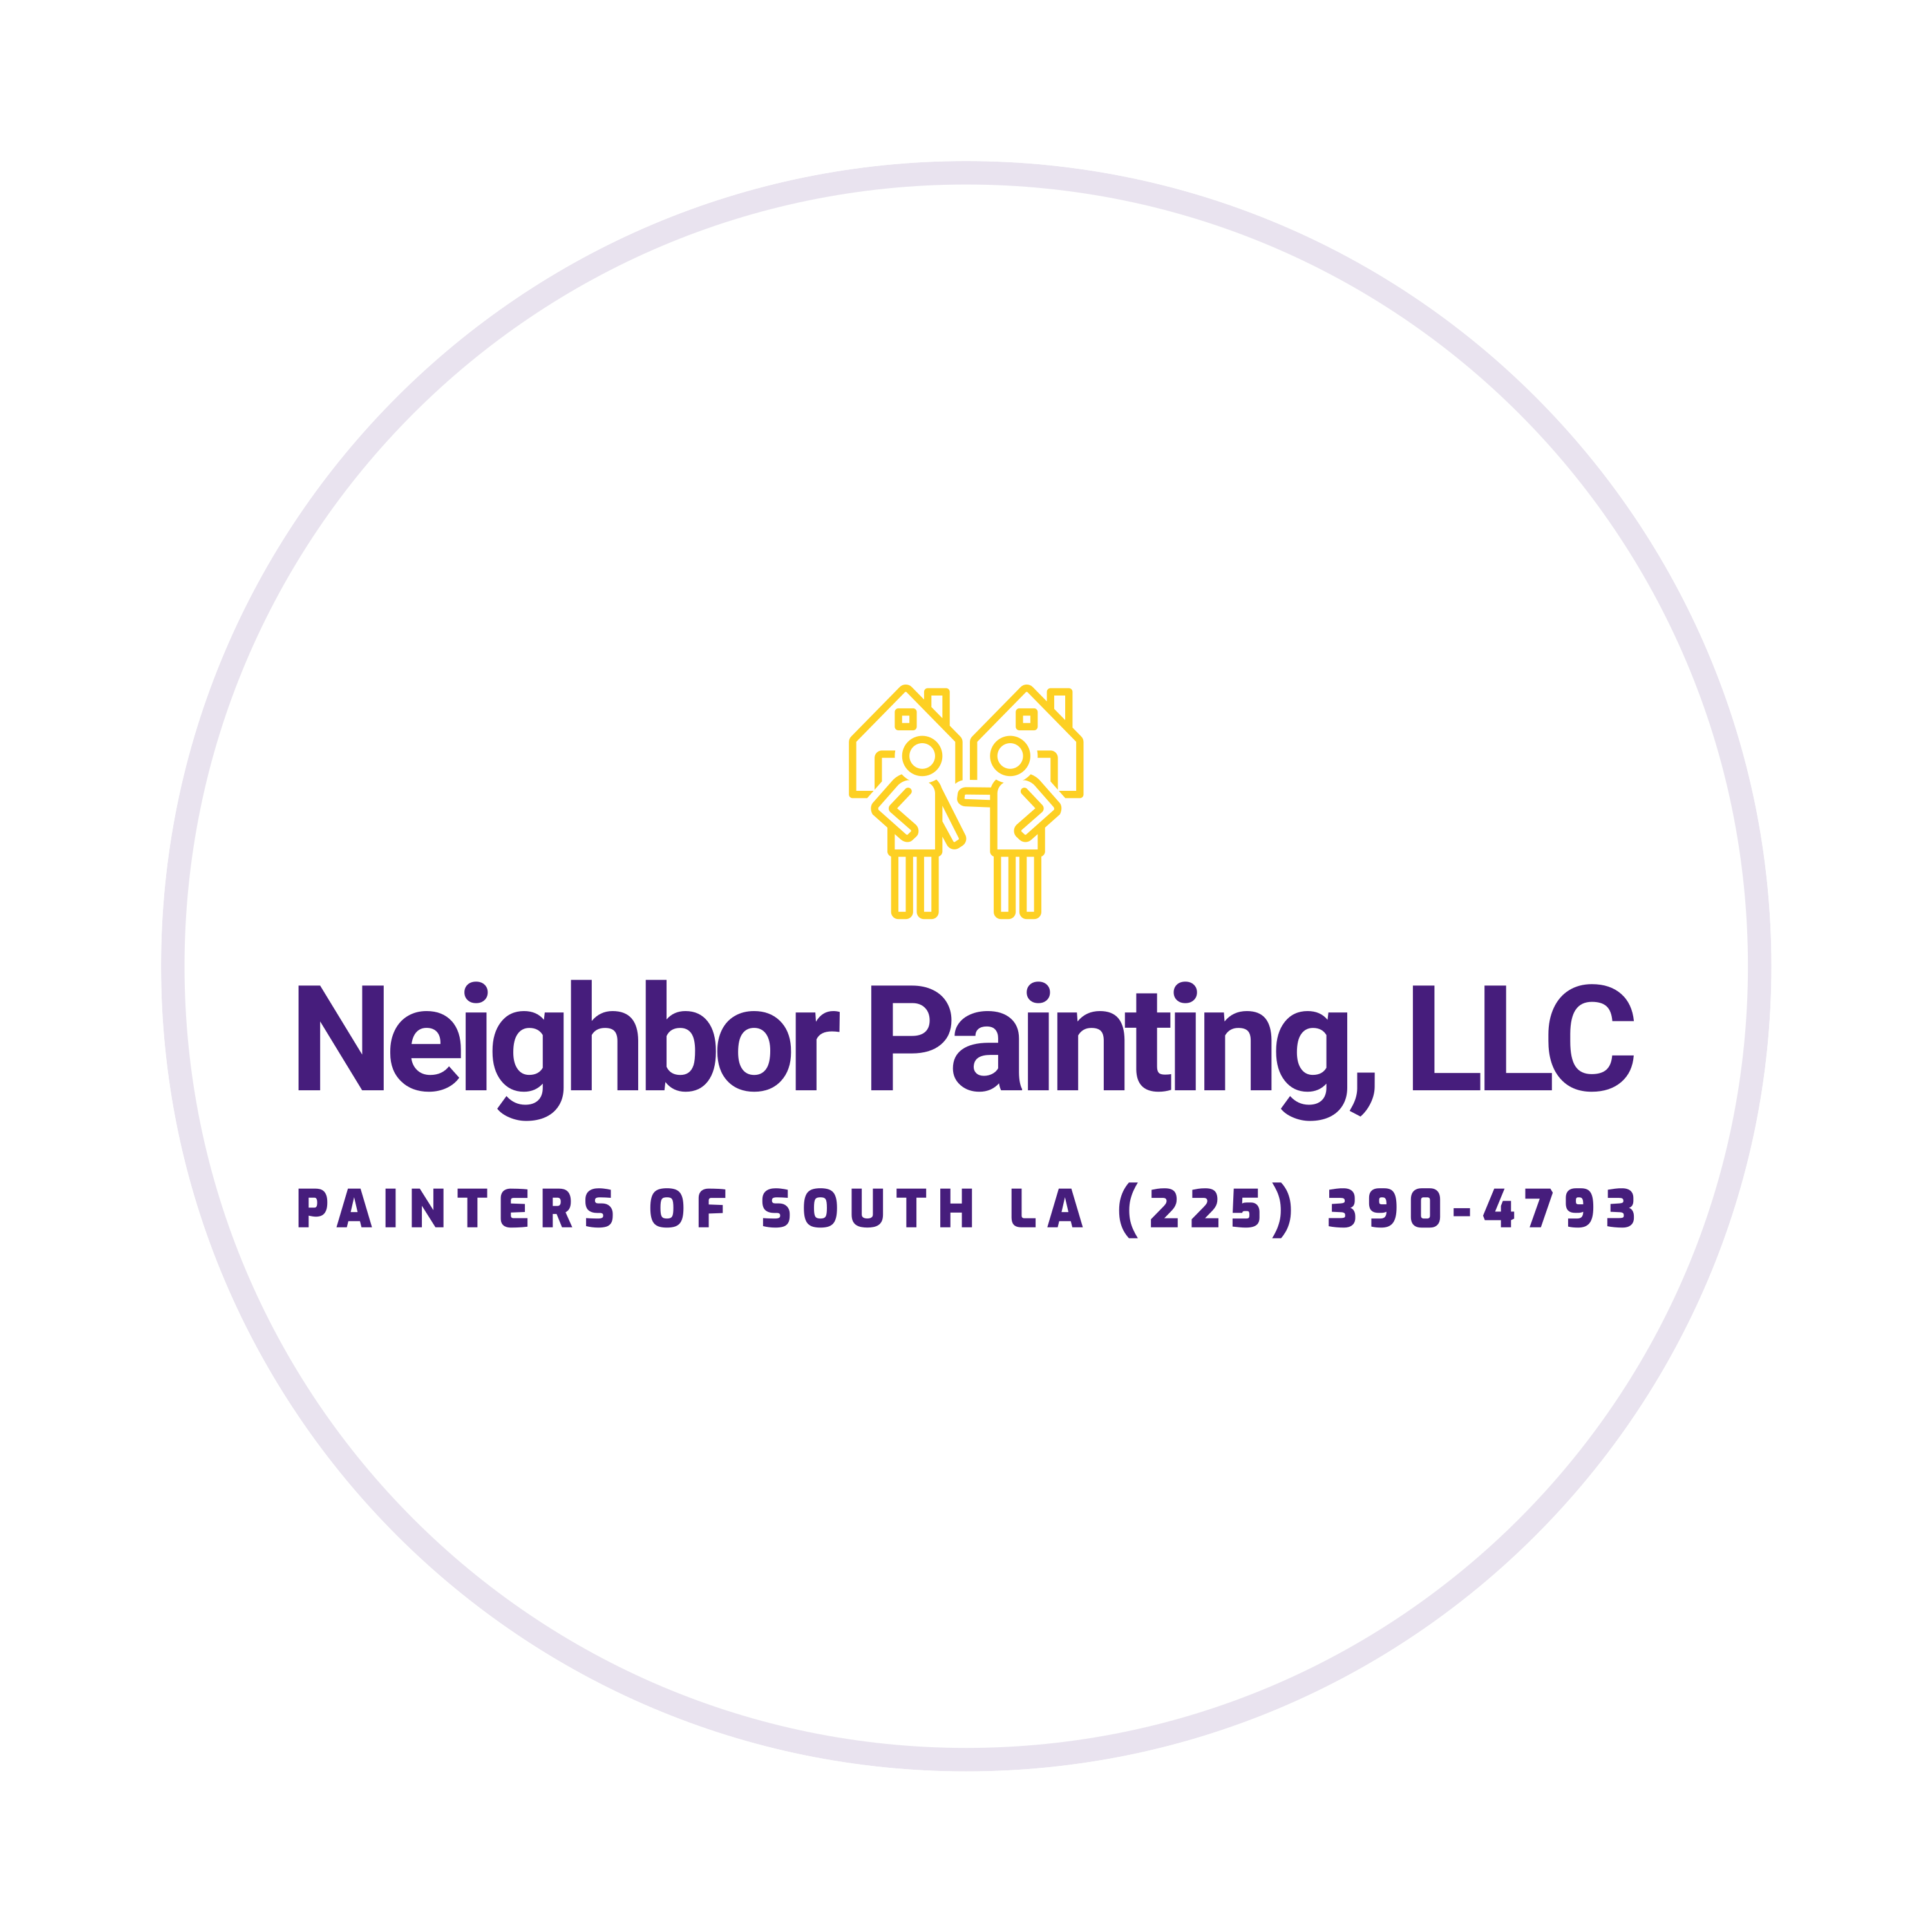 Neighbor Painting, LLC